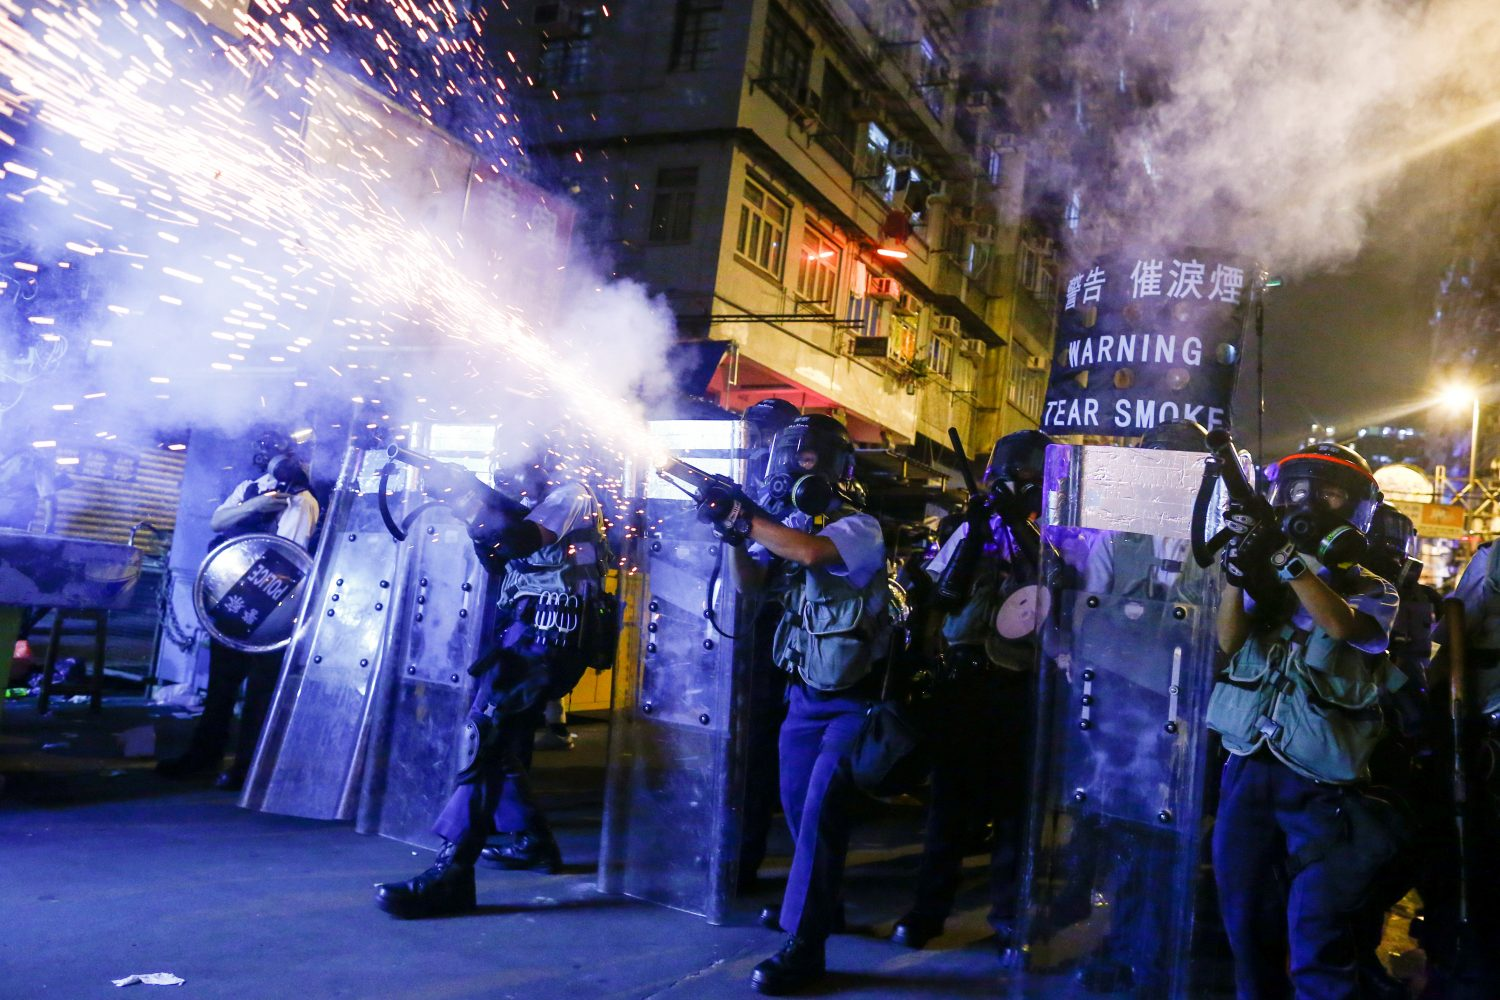 FILE PHOTO: Police fire tear gas at anti-extradition bill protesters during clashes in Sham Shui Po in Hong Kong, China, August 14, 2019. REUTERS/Thomas Peter/File Photo